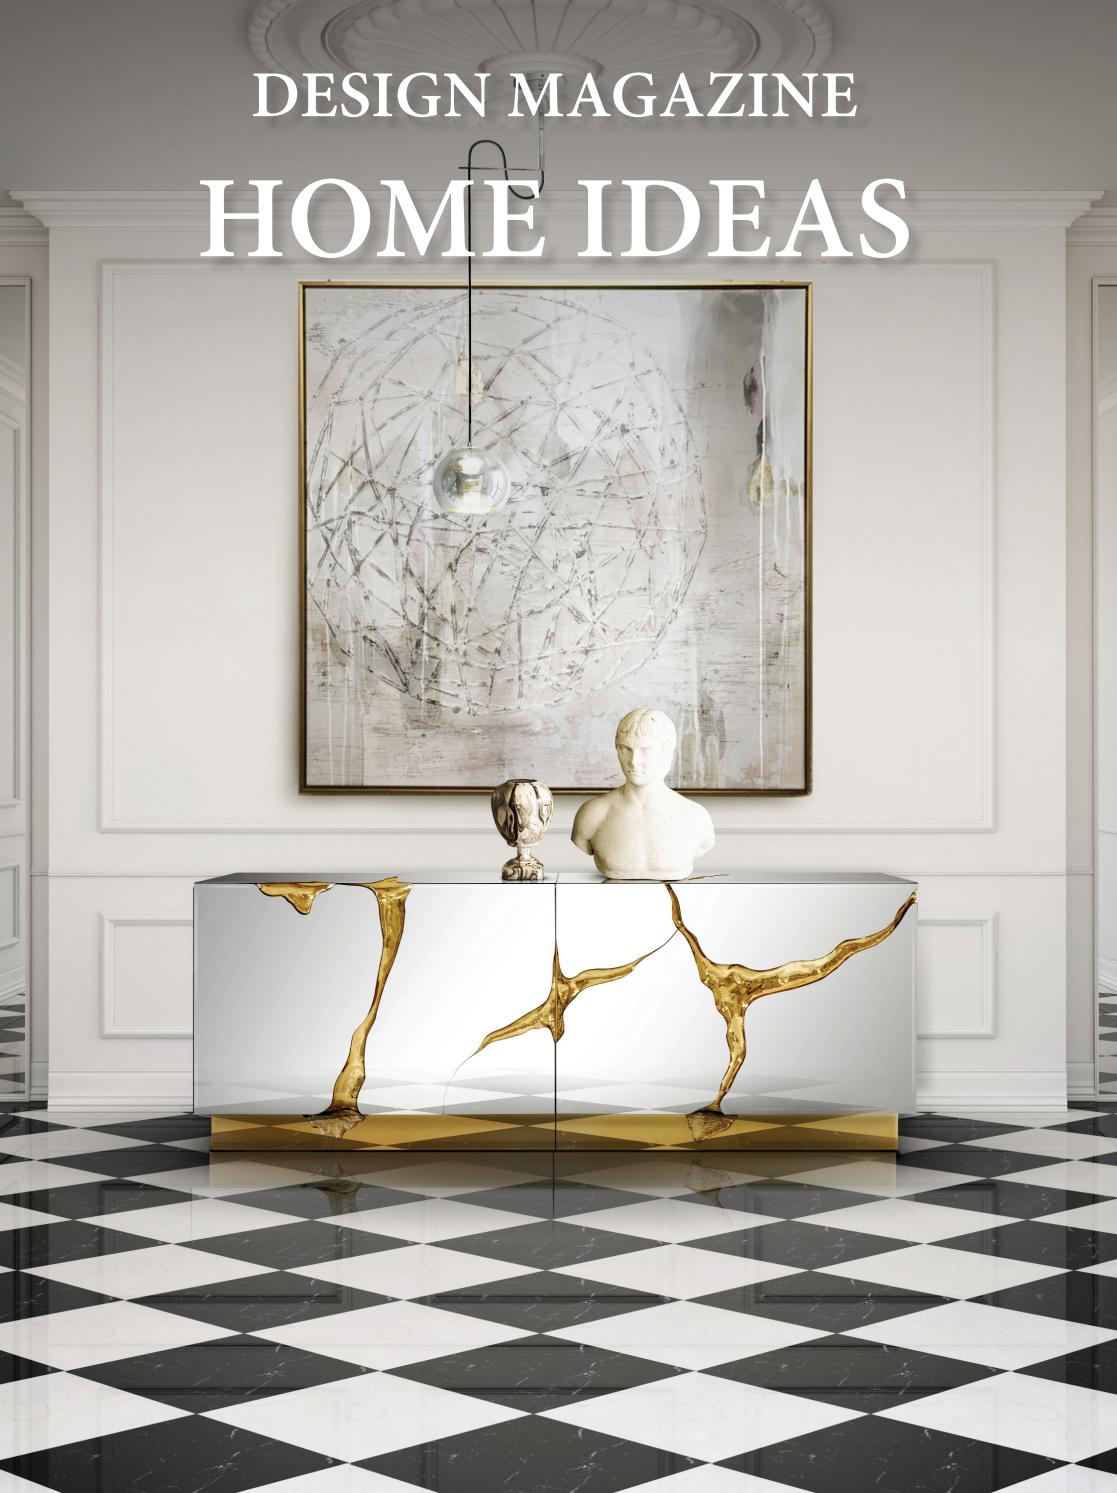 Design magazine home ideas by covet house issuu for House designs magazine